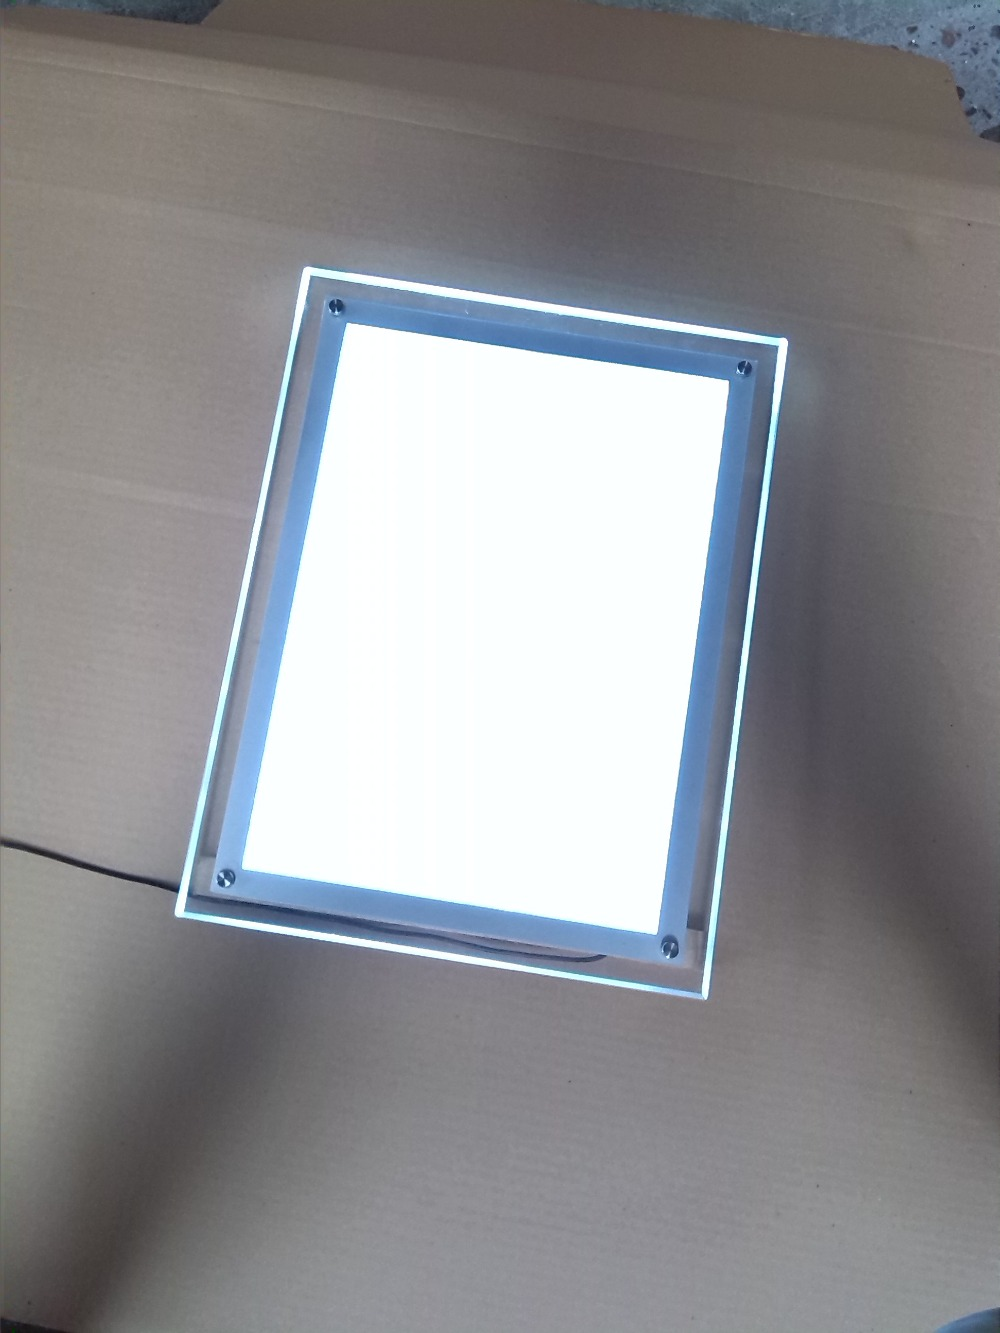 New crystal ultra slim acrylic led light boxled photo display new crystal ultra slim acrylic led light boxled photo display frameslimline sign size a3 in advertising lights from lights lighting on aliexpress jeuxipadfo Gallery